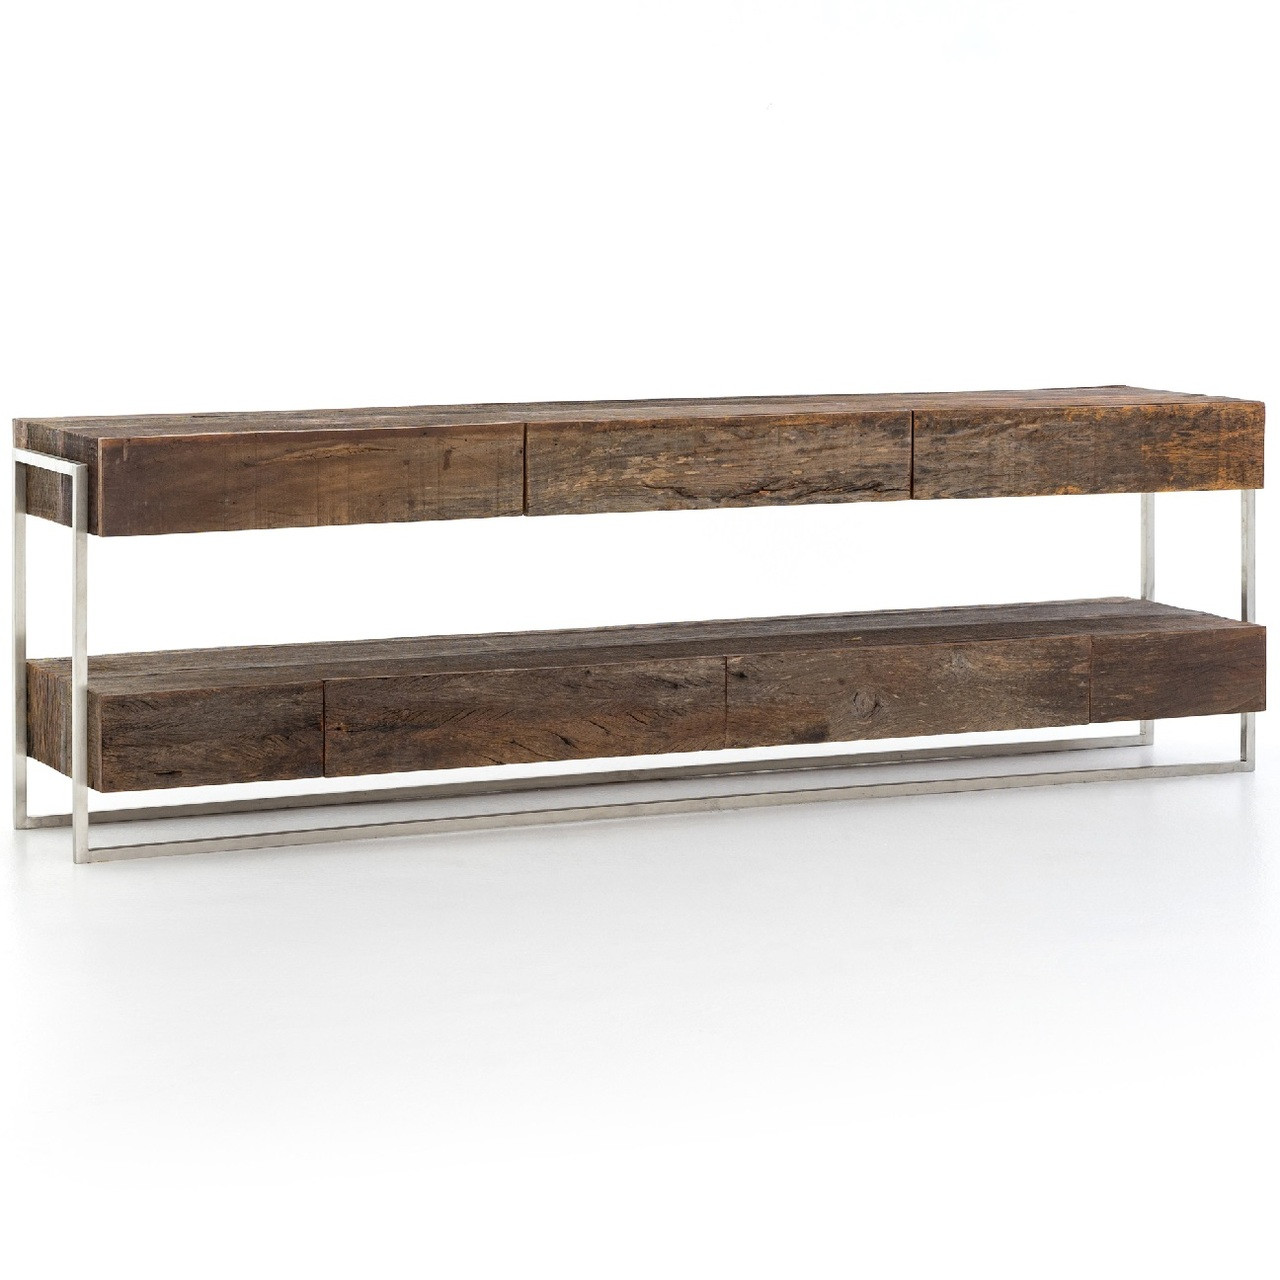 Terrific Carson Reclaimed Peroba Wood Long Media Console 84 Gmtry Best Dining Table And Chair Ideas Images Gmtryco